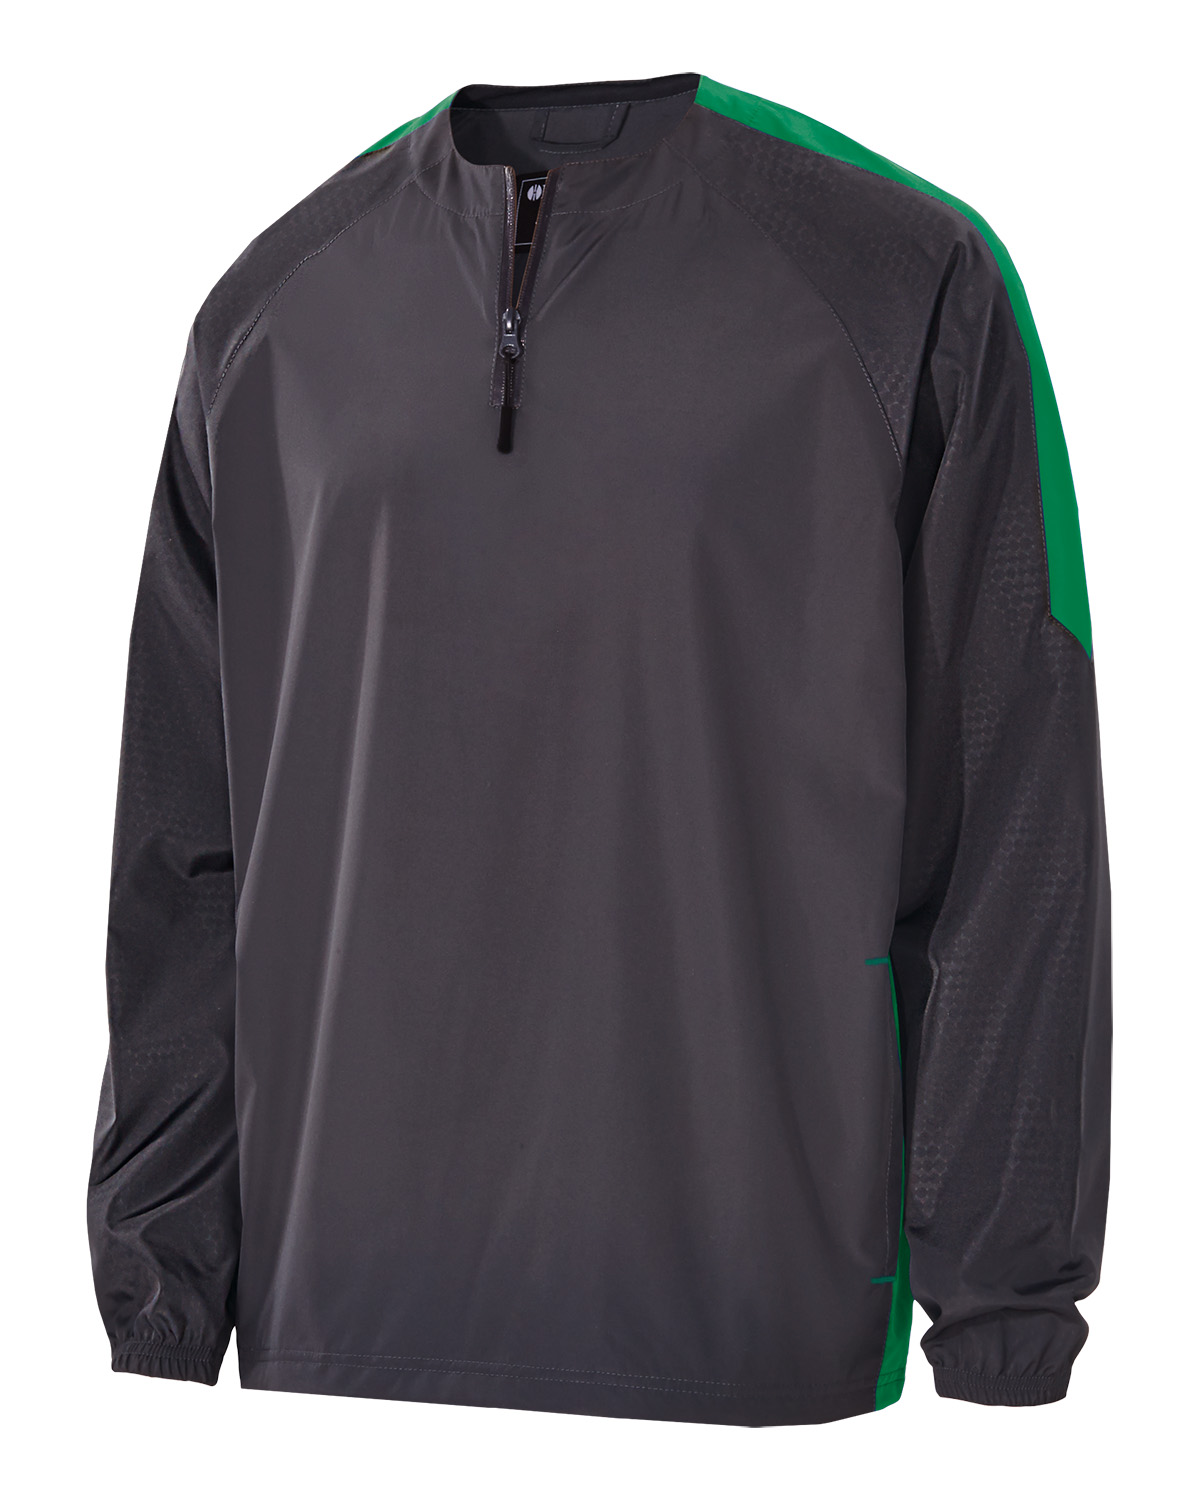 Holloway 229027 - Adult Polyester Bionic 1/4 Zip Pullover